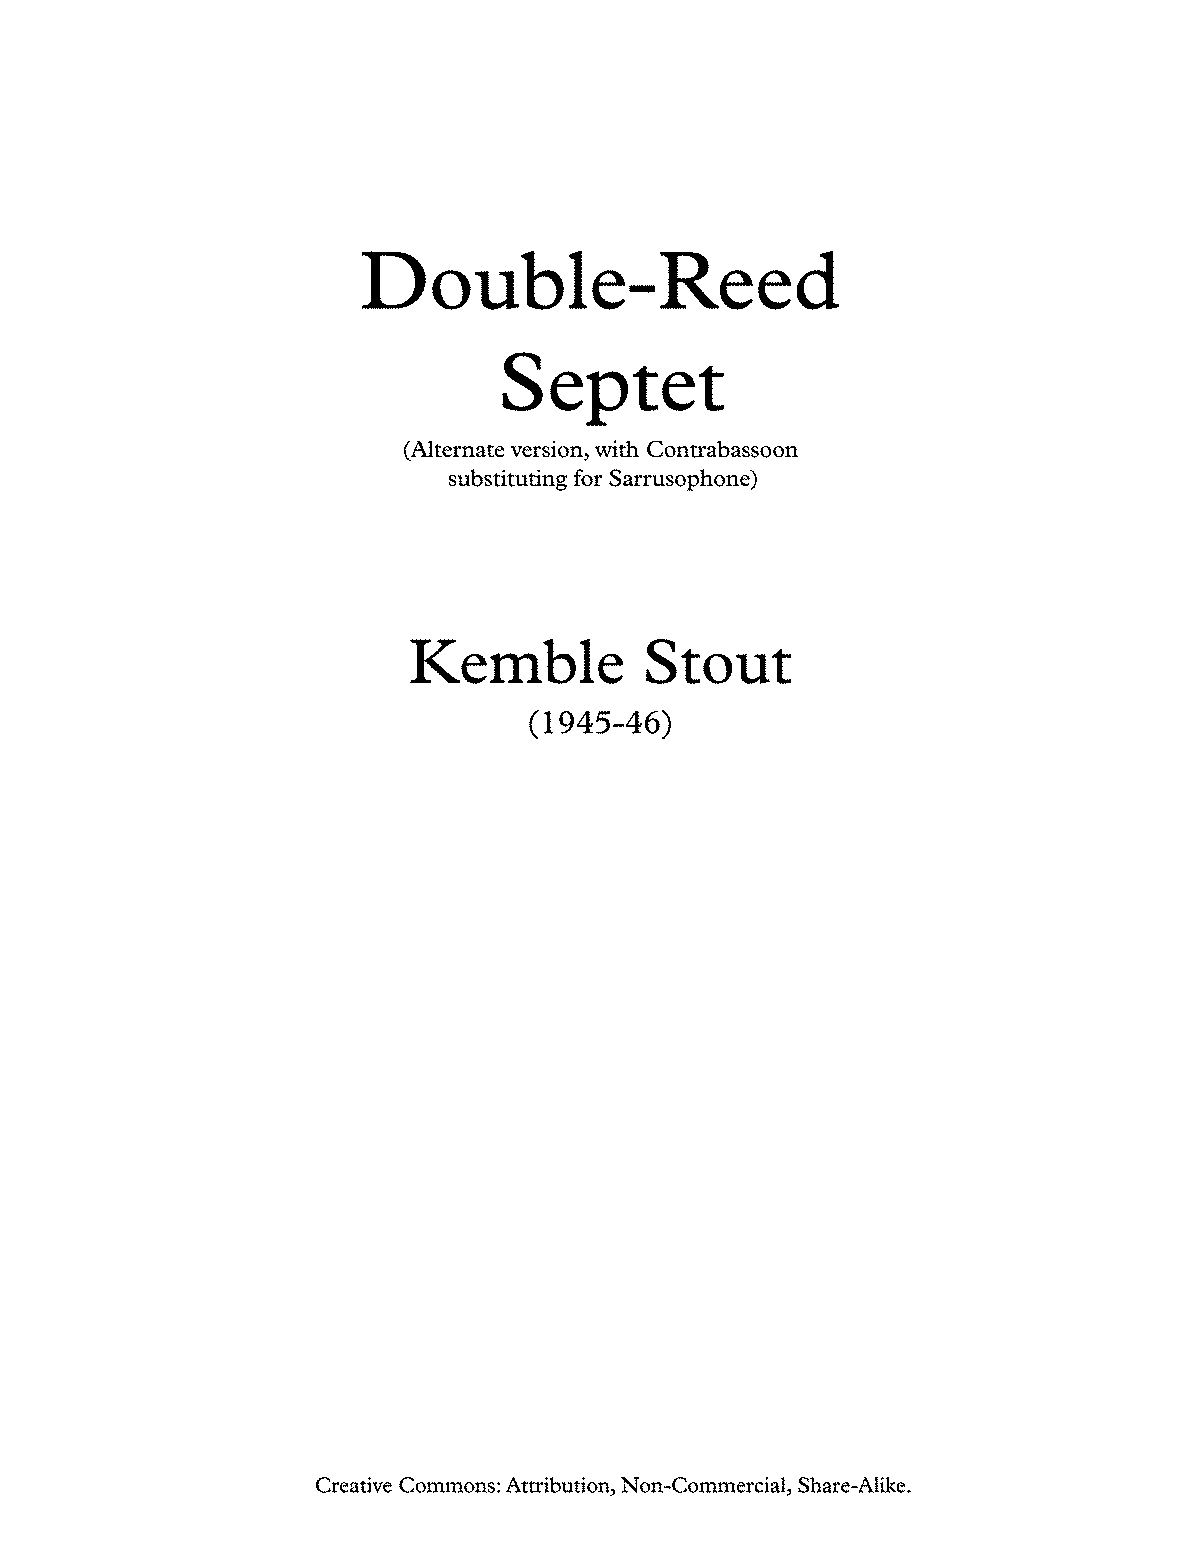 PMLP582978-Double-Reed Septet - Contrabassoon sub.pdf